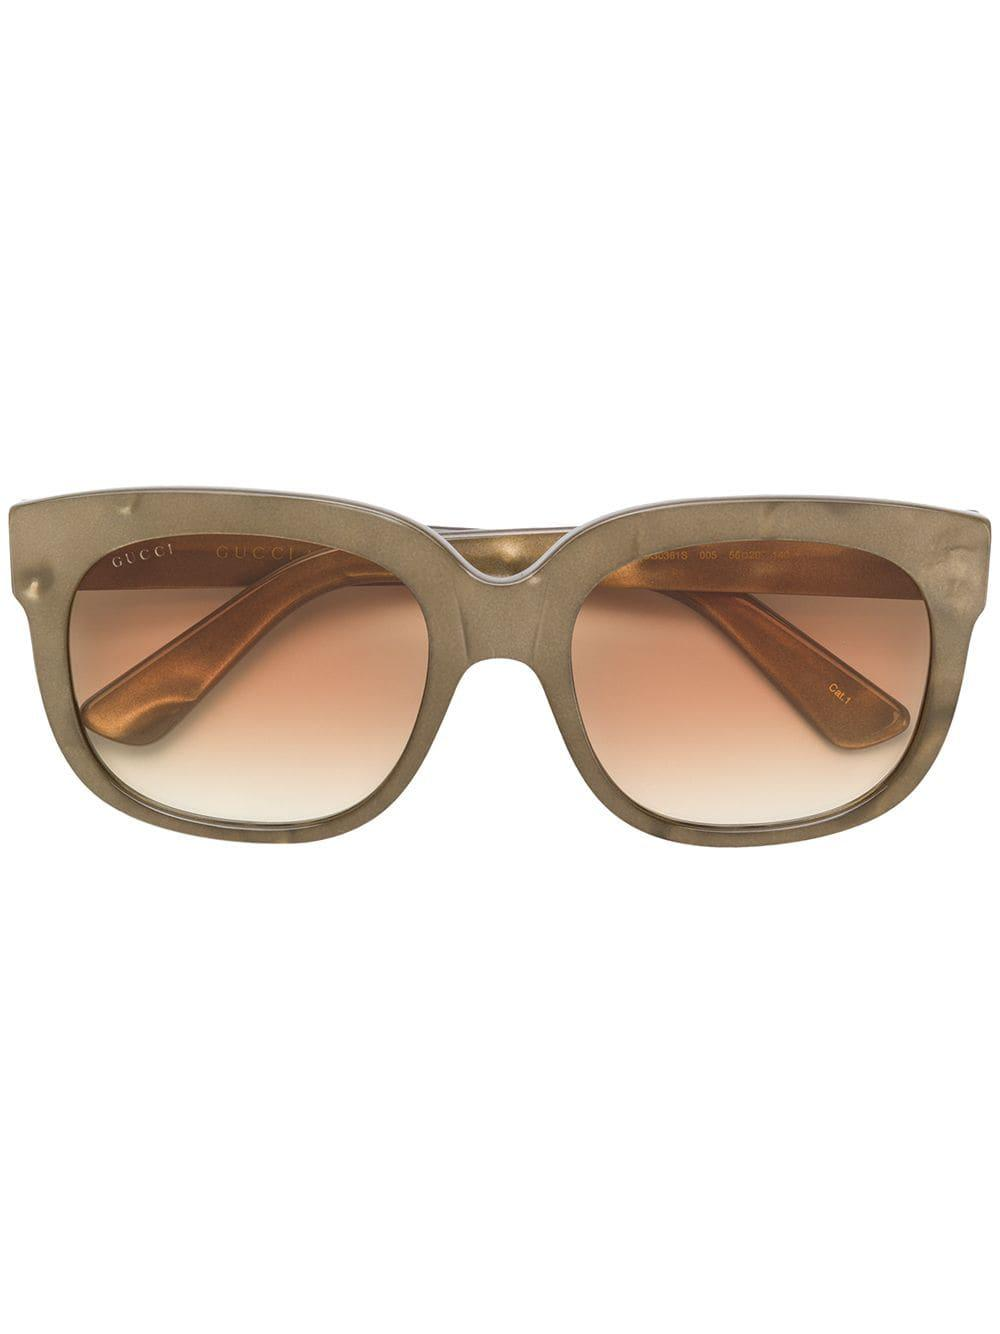 ee52dd431f6 Gucci Eyewear Classic Mass-Shape Sunglasses - Neutrals